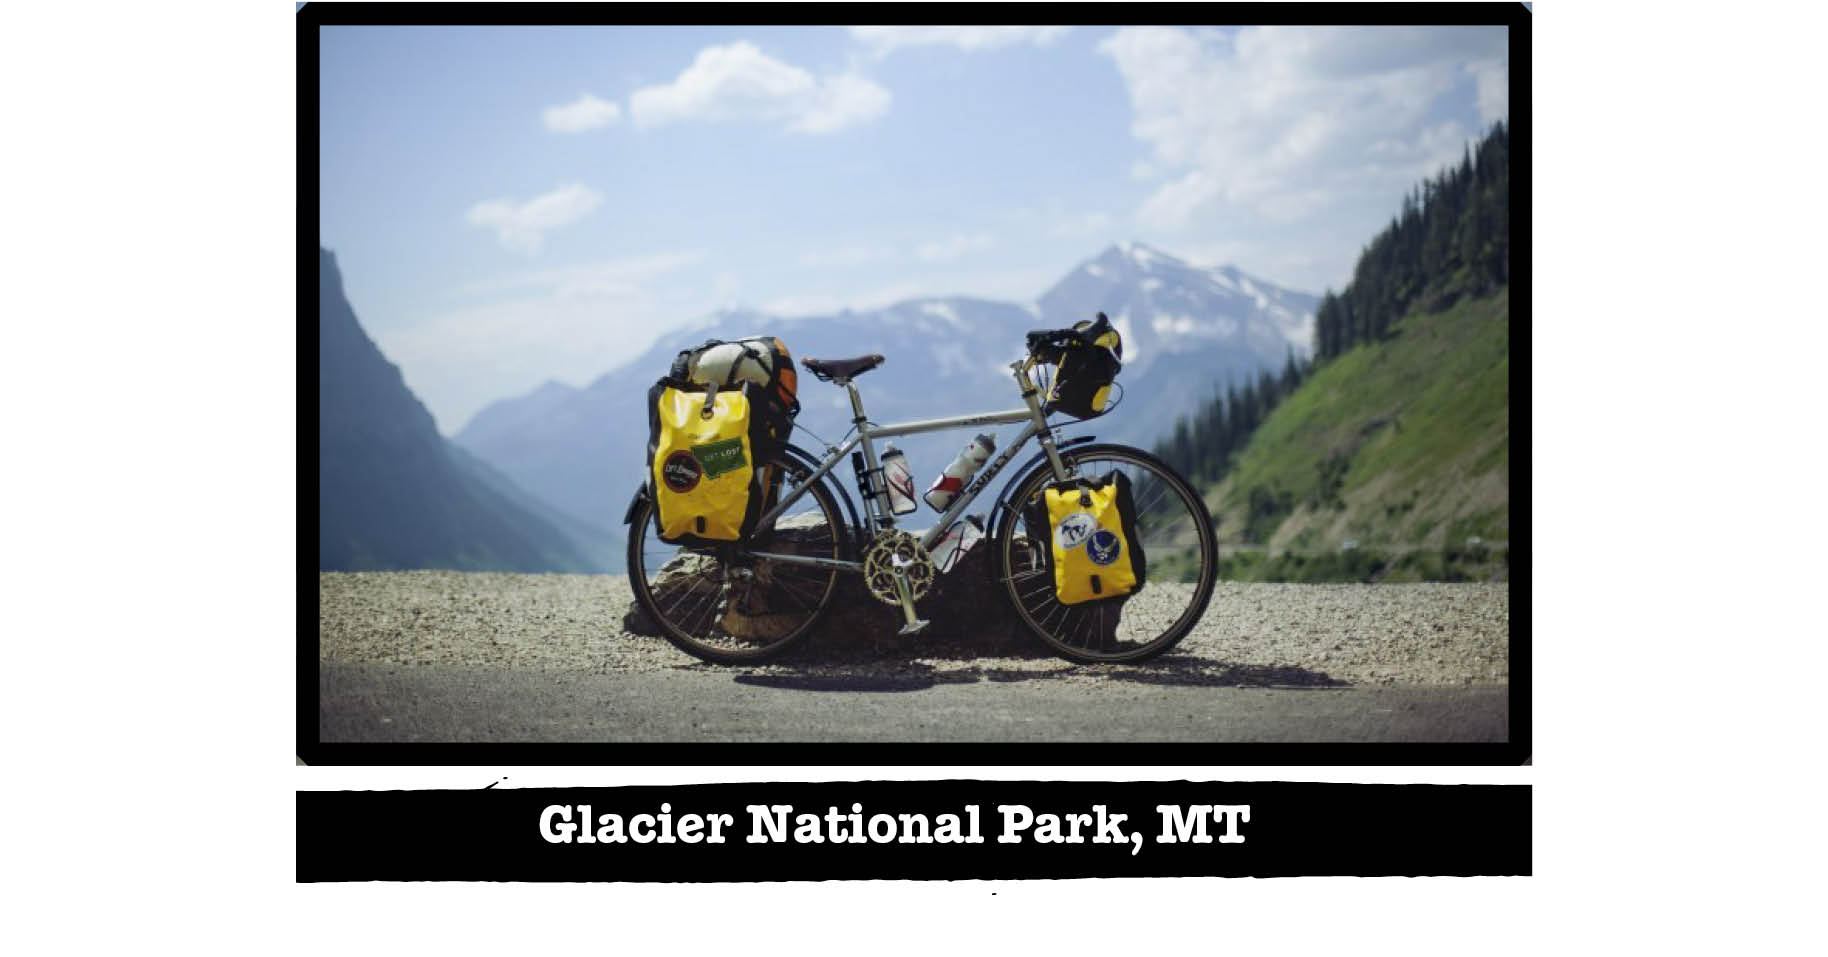 Right view of Surly Trucker bike on the edge of a road in the mountains - Glacier National Park, MT tag below image